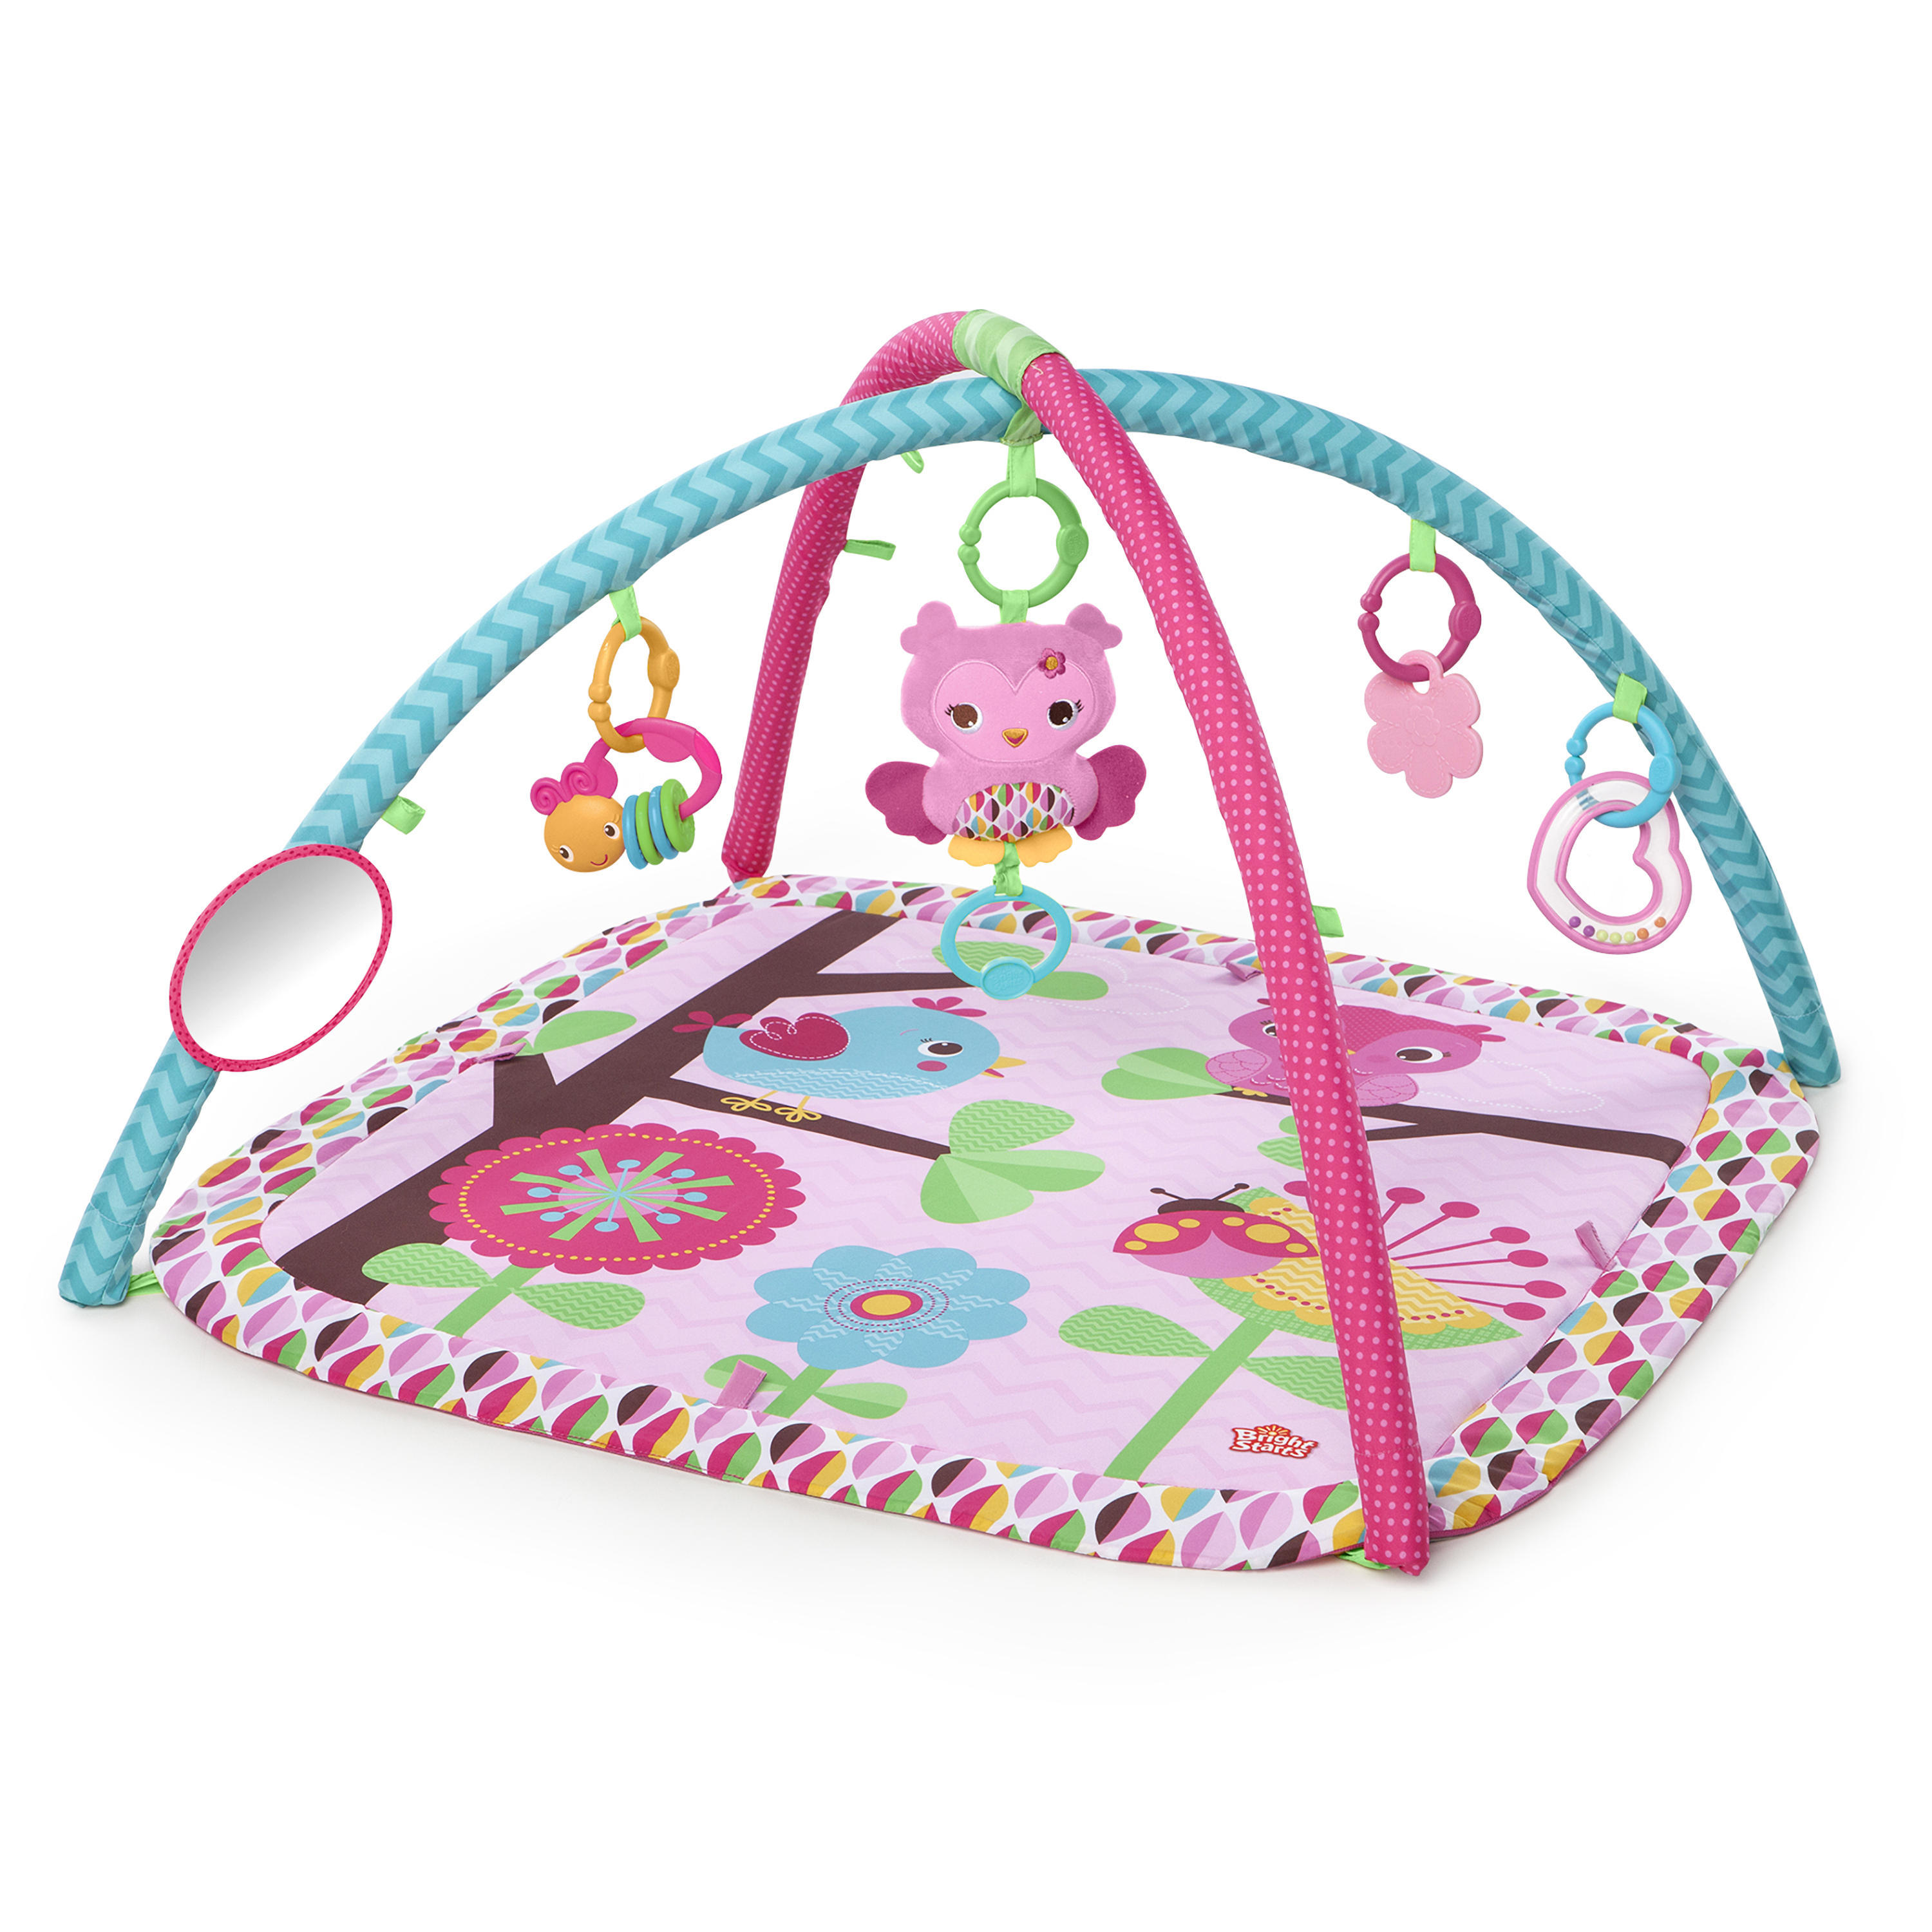 Bright Starts Activity Gym and Play Mat - Charming Chirps